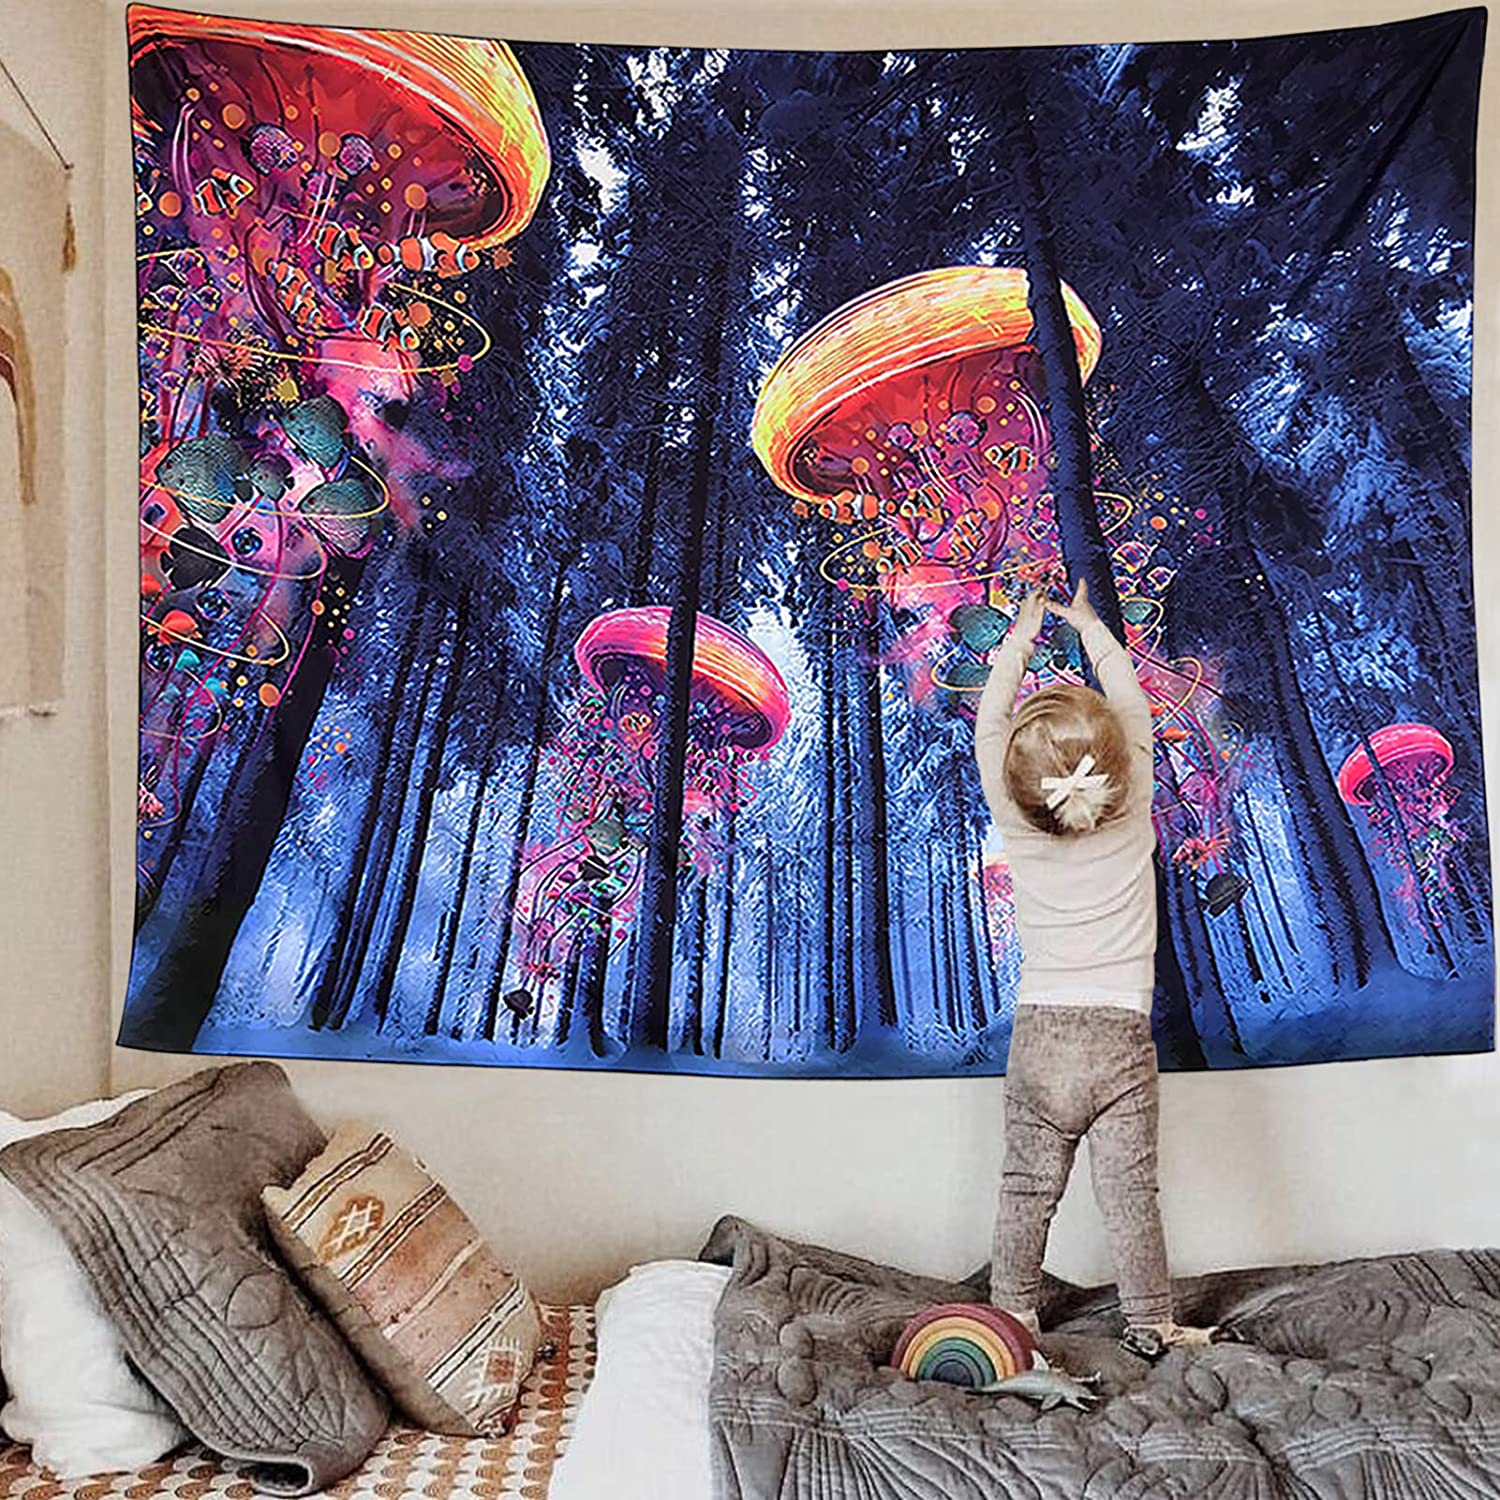 FairDew Nature Tapestry 5% OFF Wall store Hanging Landscape Bedroo Forest for